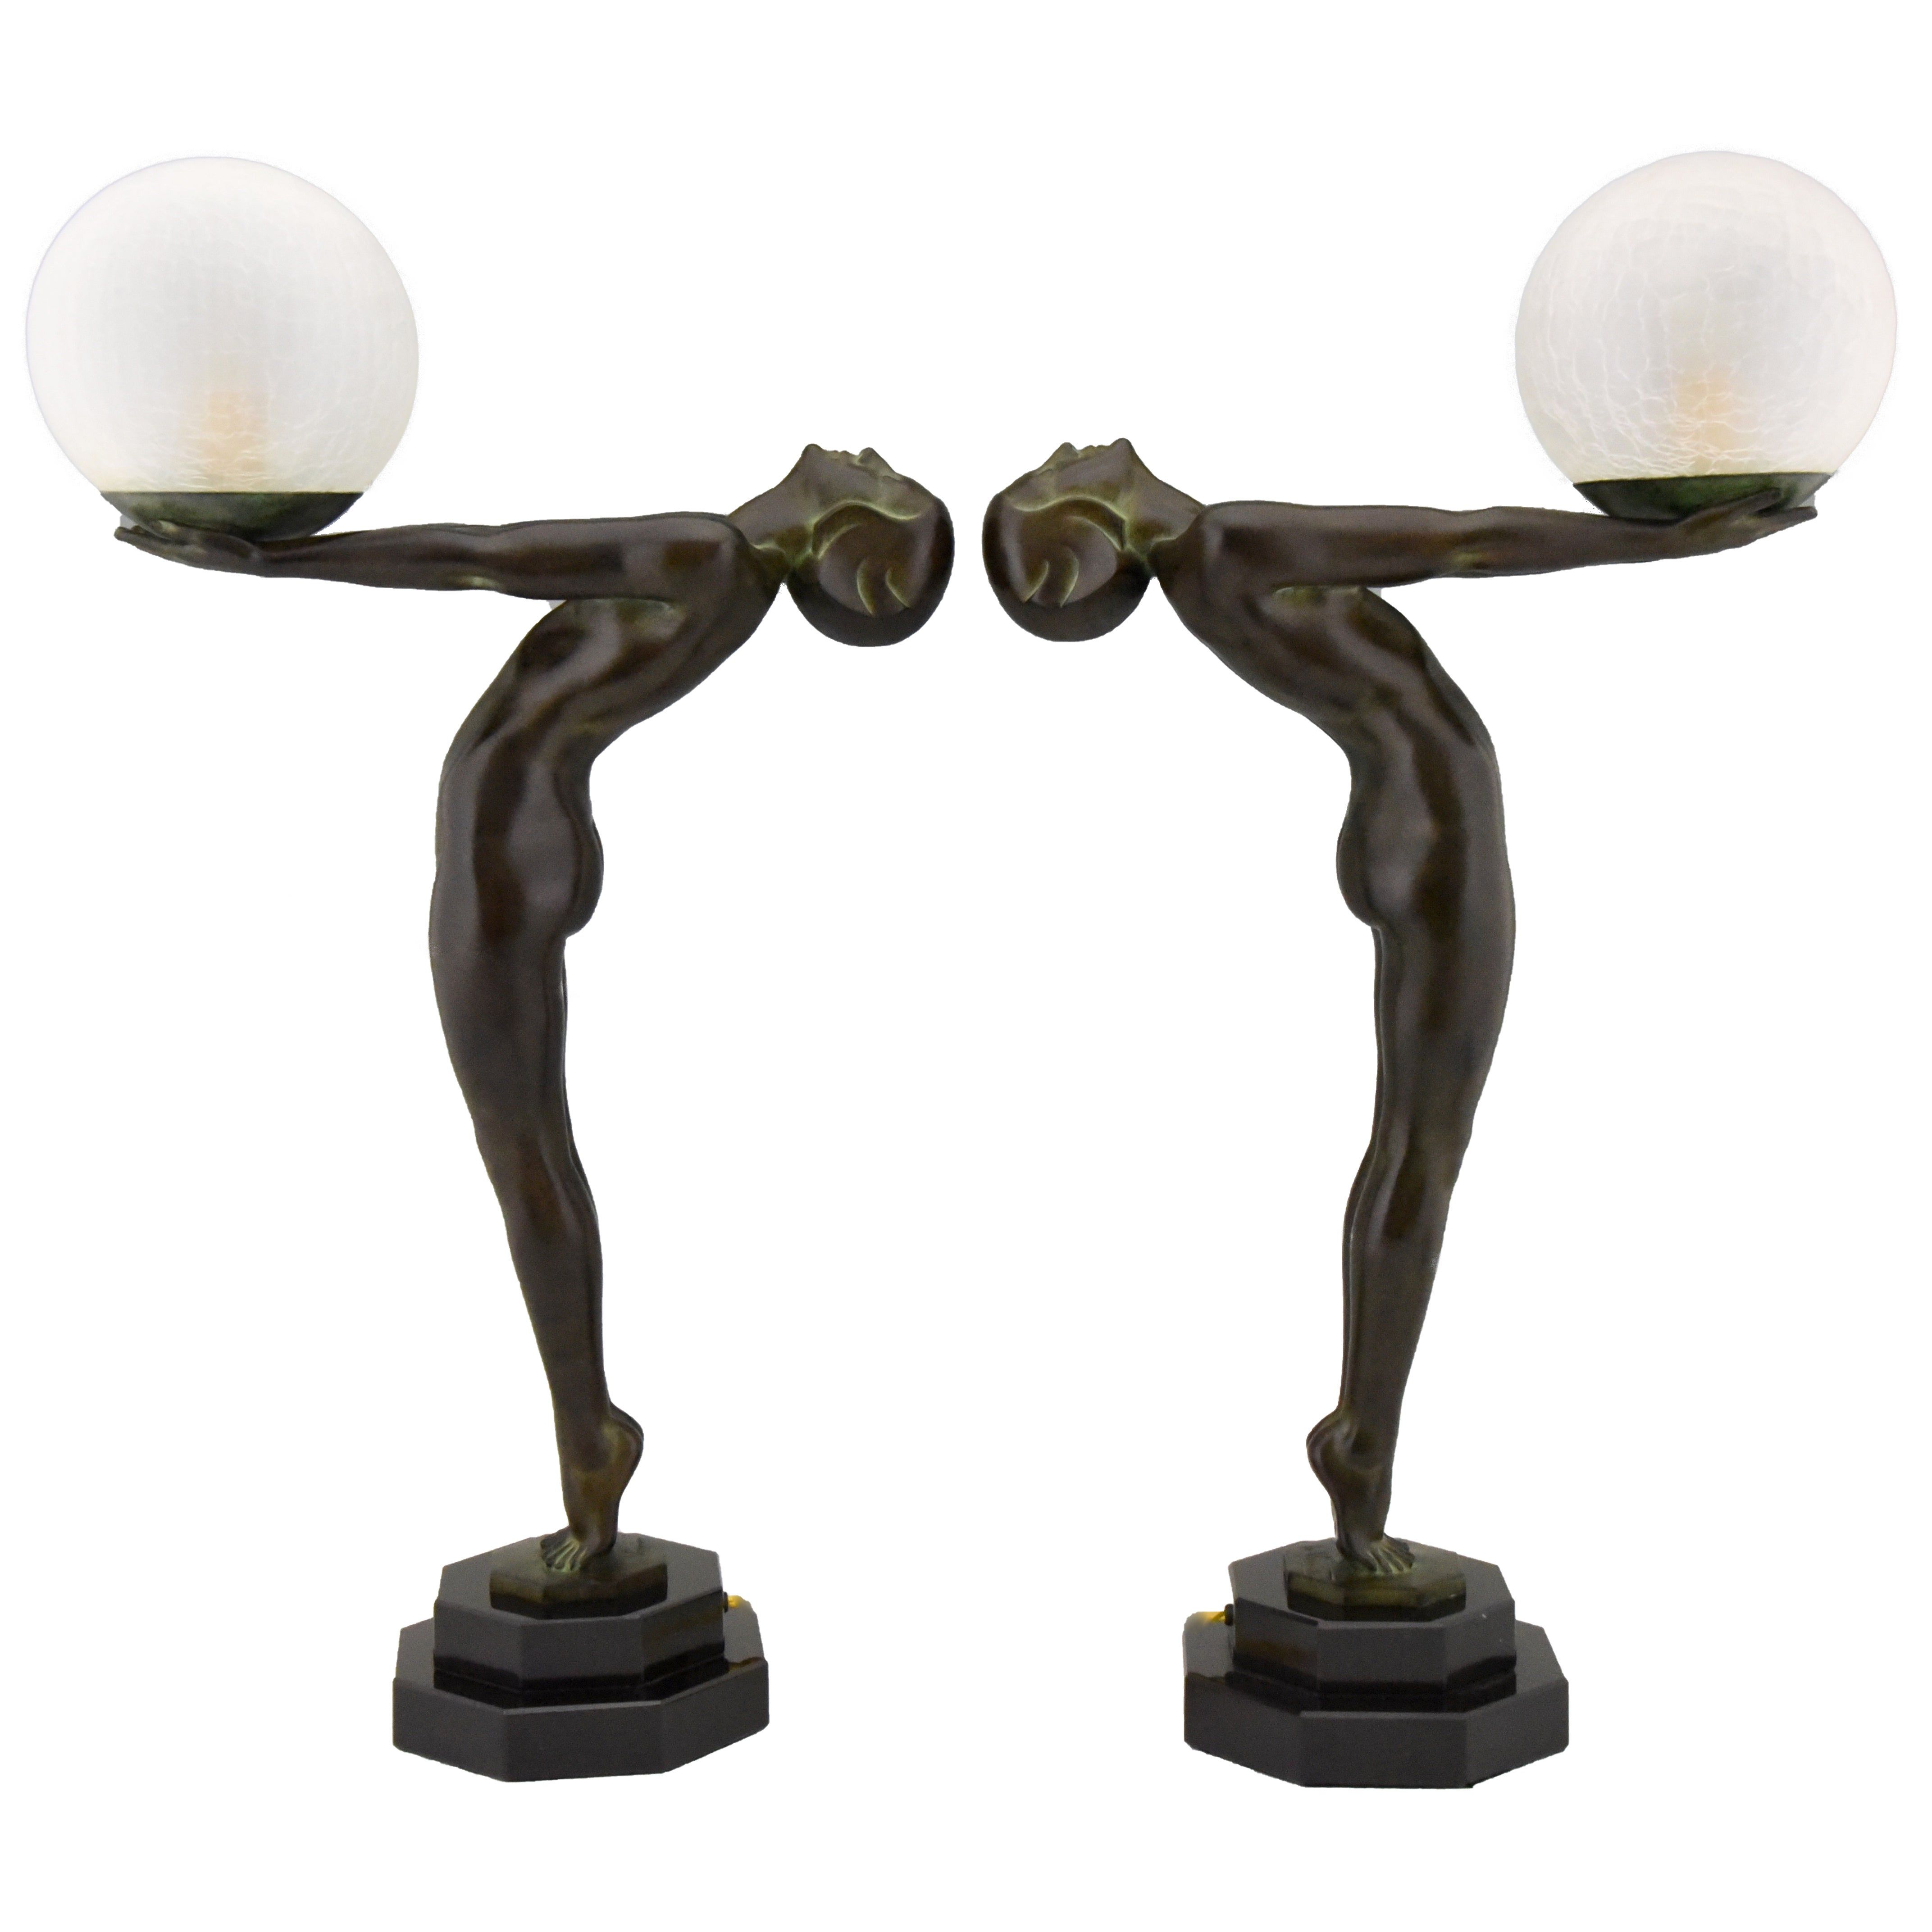 Pair of Art Deco Style Lamps Lumina Standing Nude Sculpture Max Le Verrier